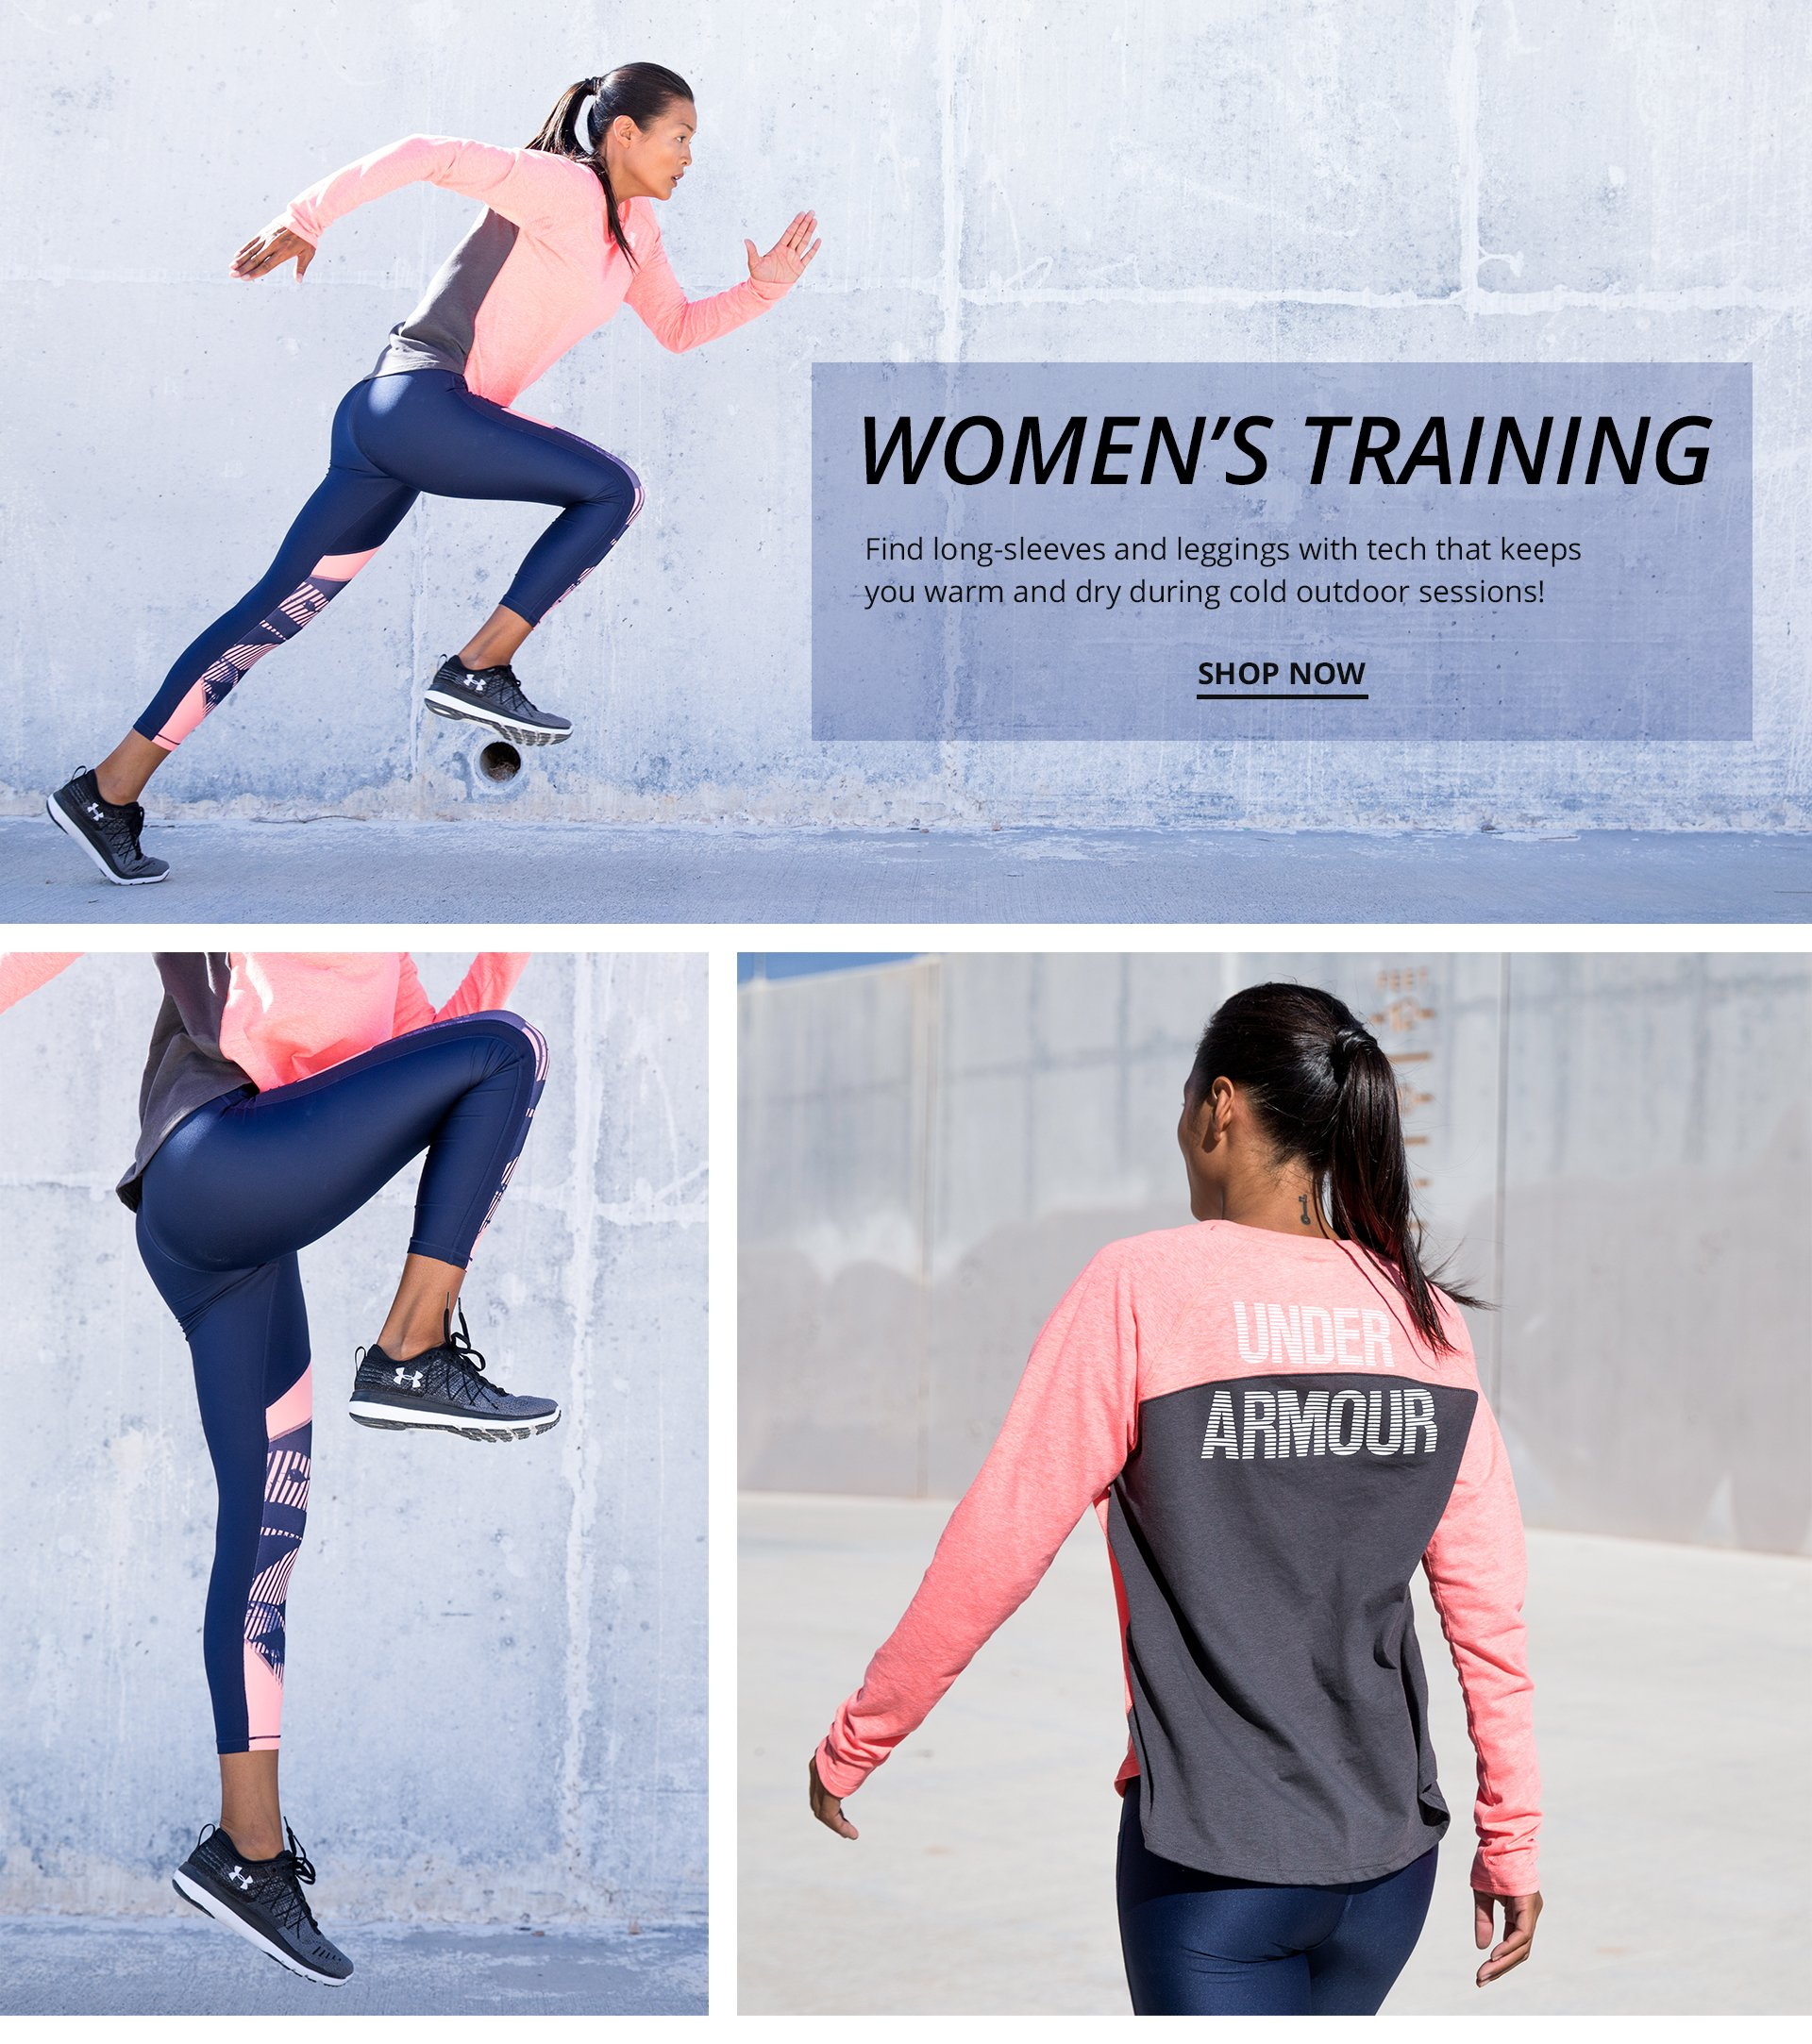 Shop Under Armour Women's Training